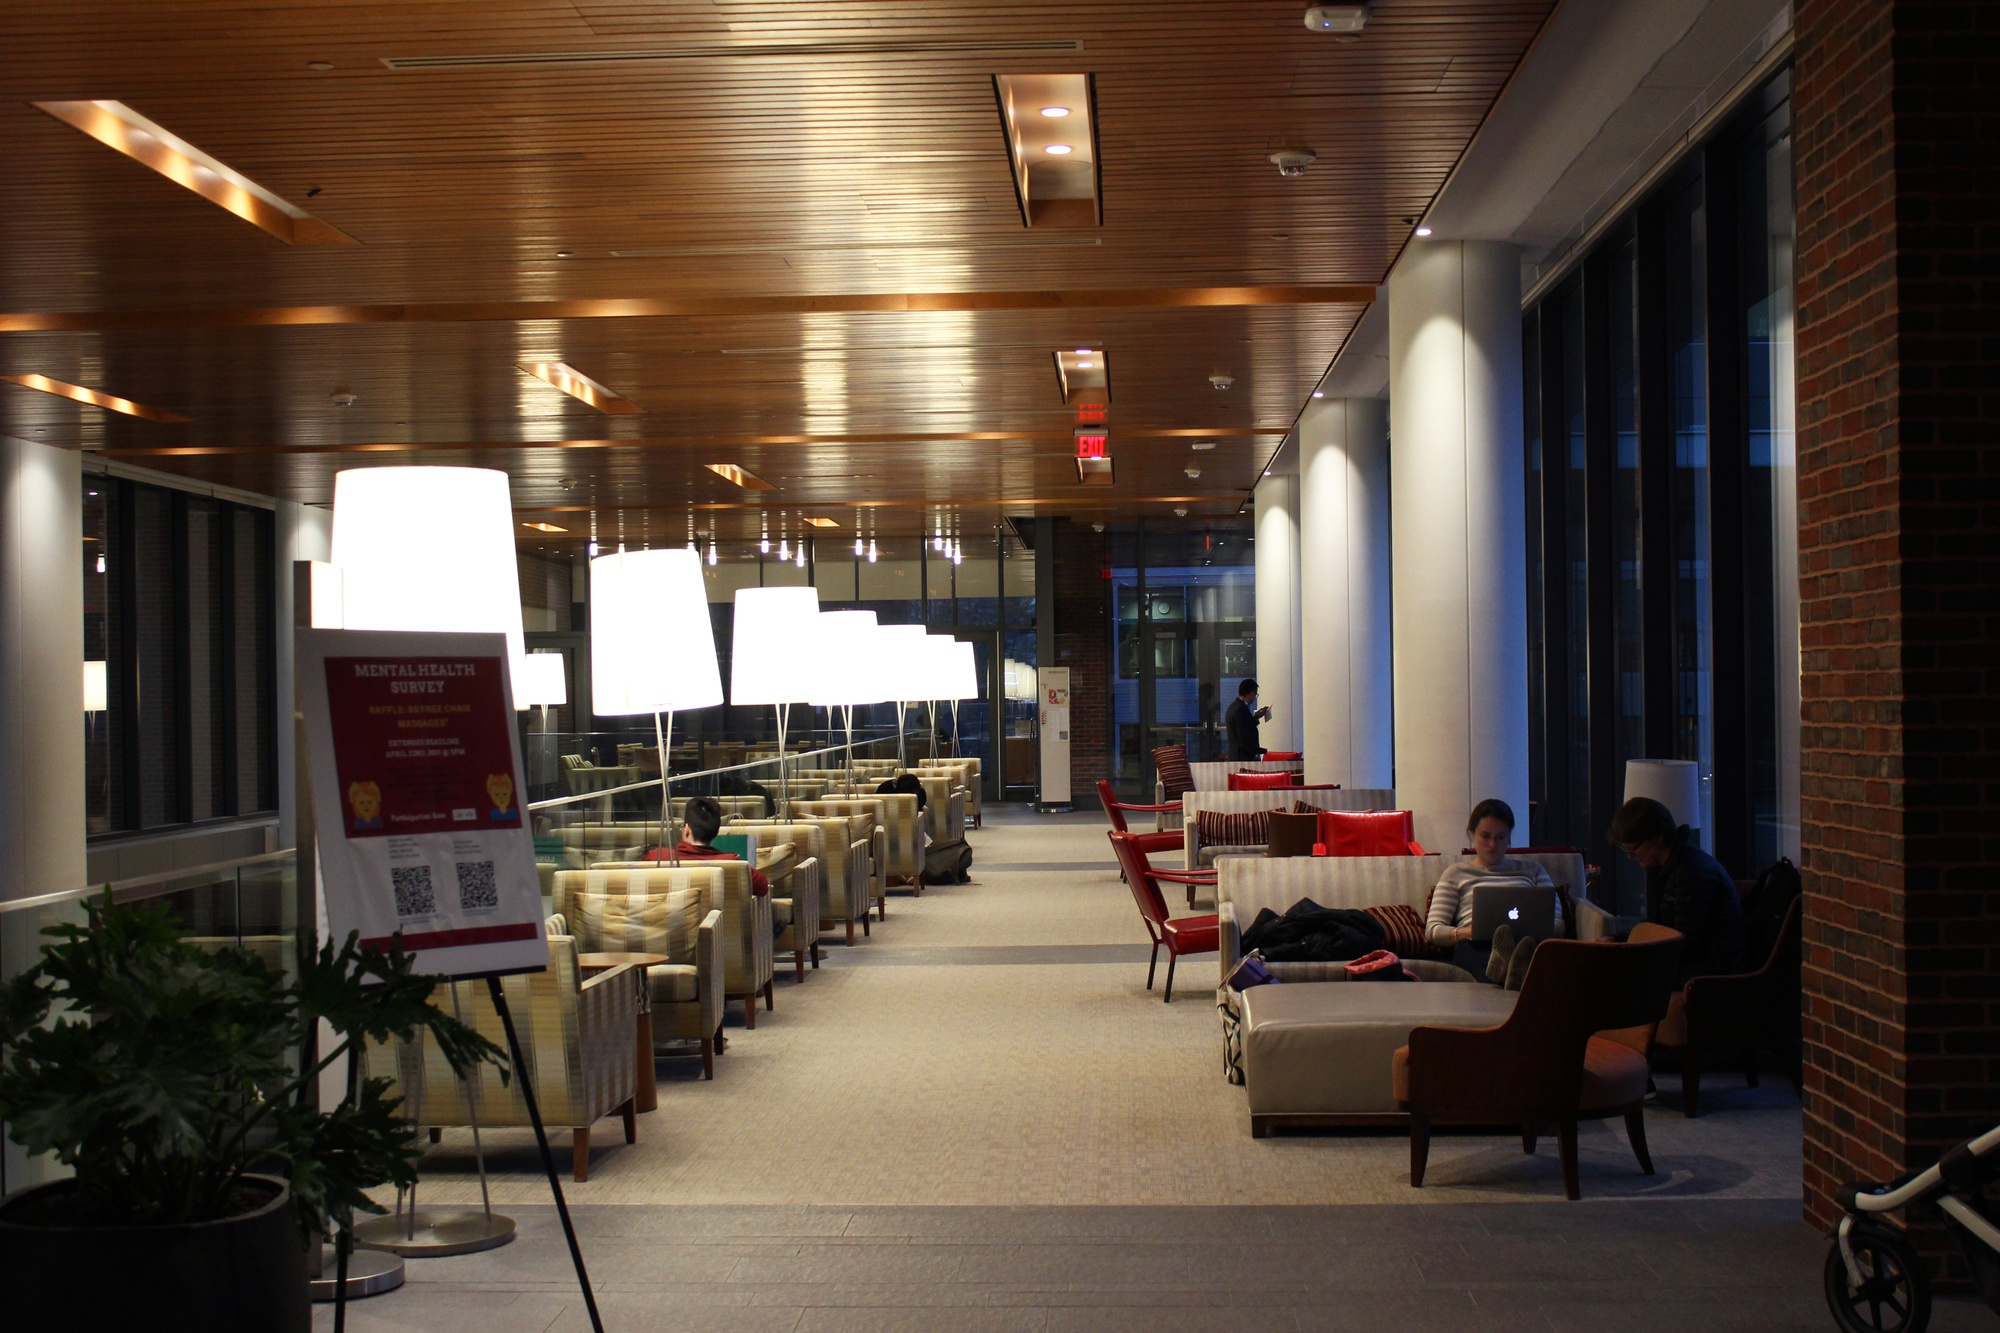 The Harvard Kennedy School provides many newly renovated study spaces that students take full advantage of.